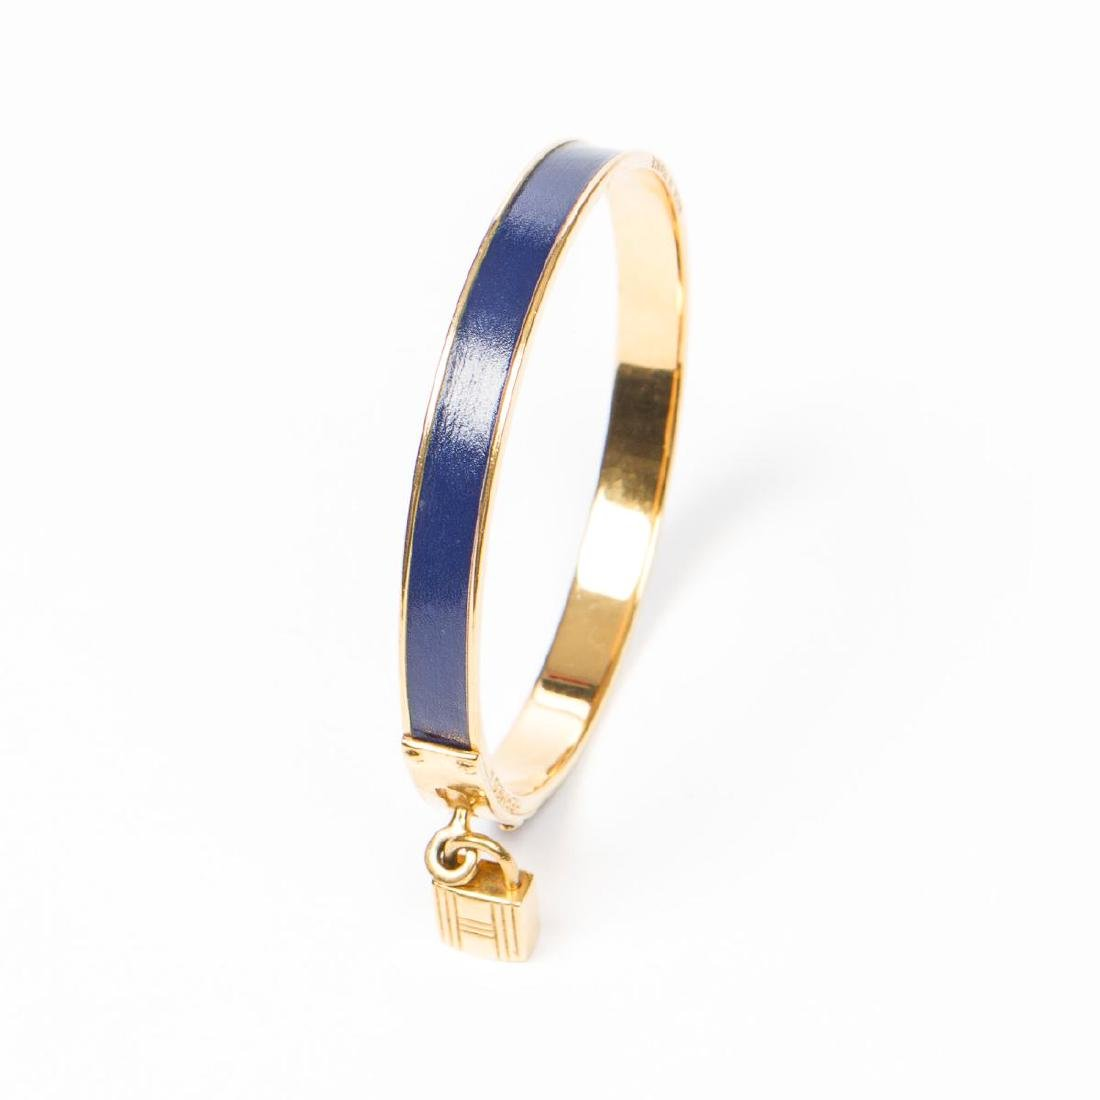 Hermes Kelly Lock Bangle - 3